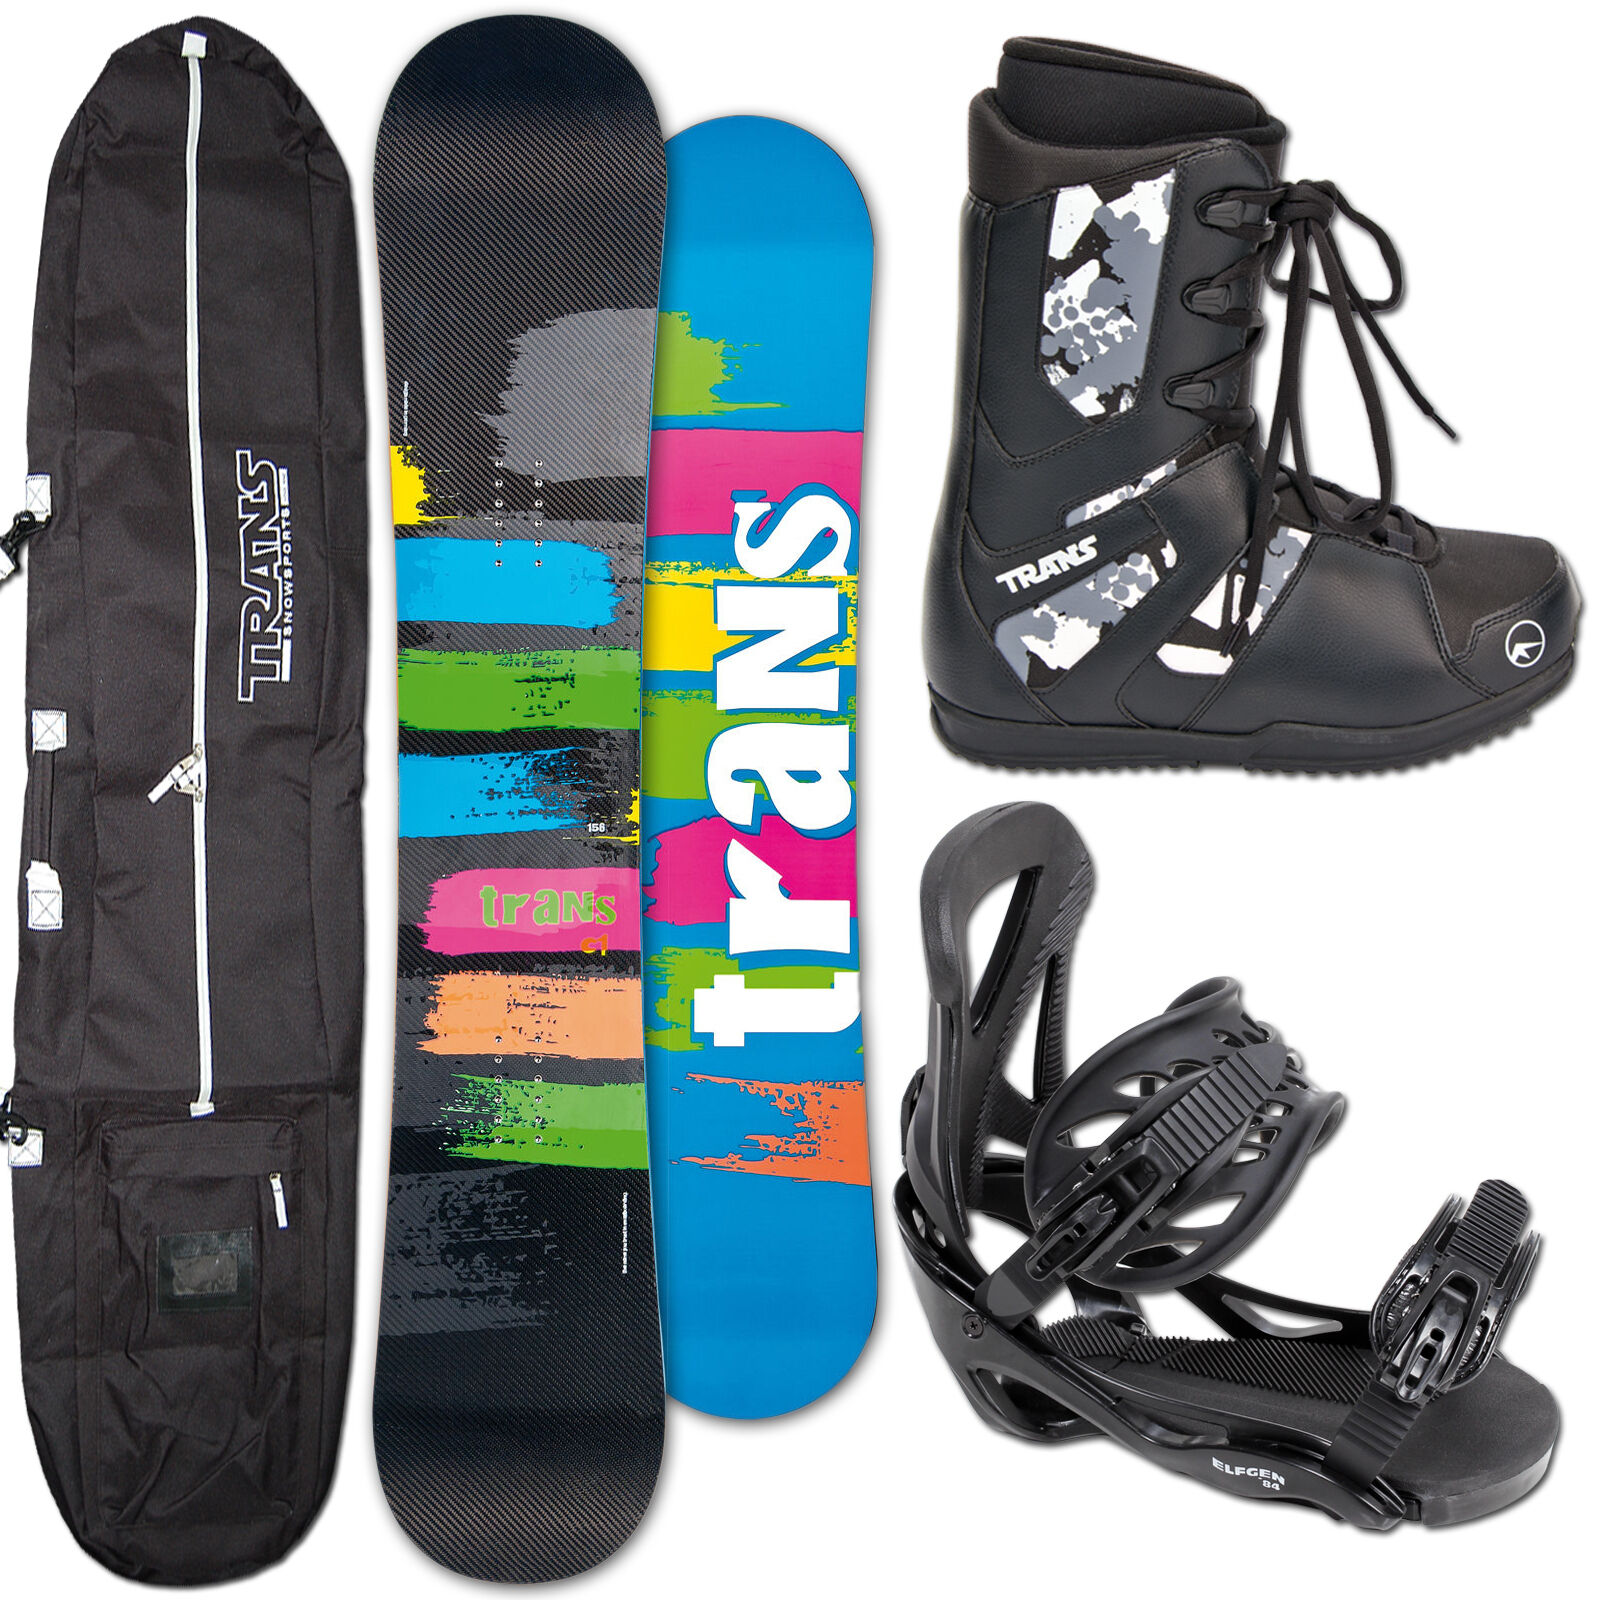 Trans Snowboard C1 Carbone 151 cm + Elfgen Team Fixation L + bottes + Bag